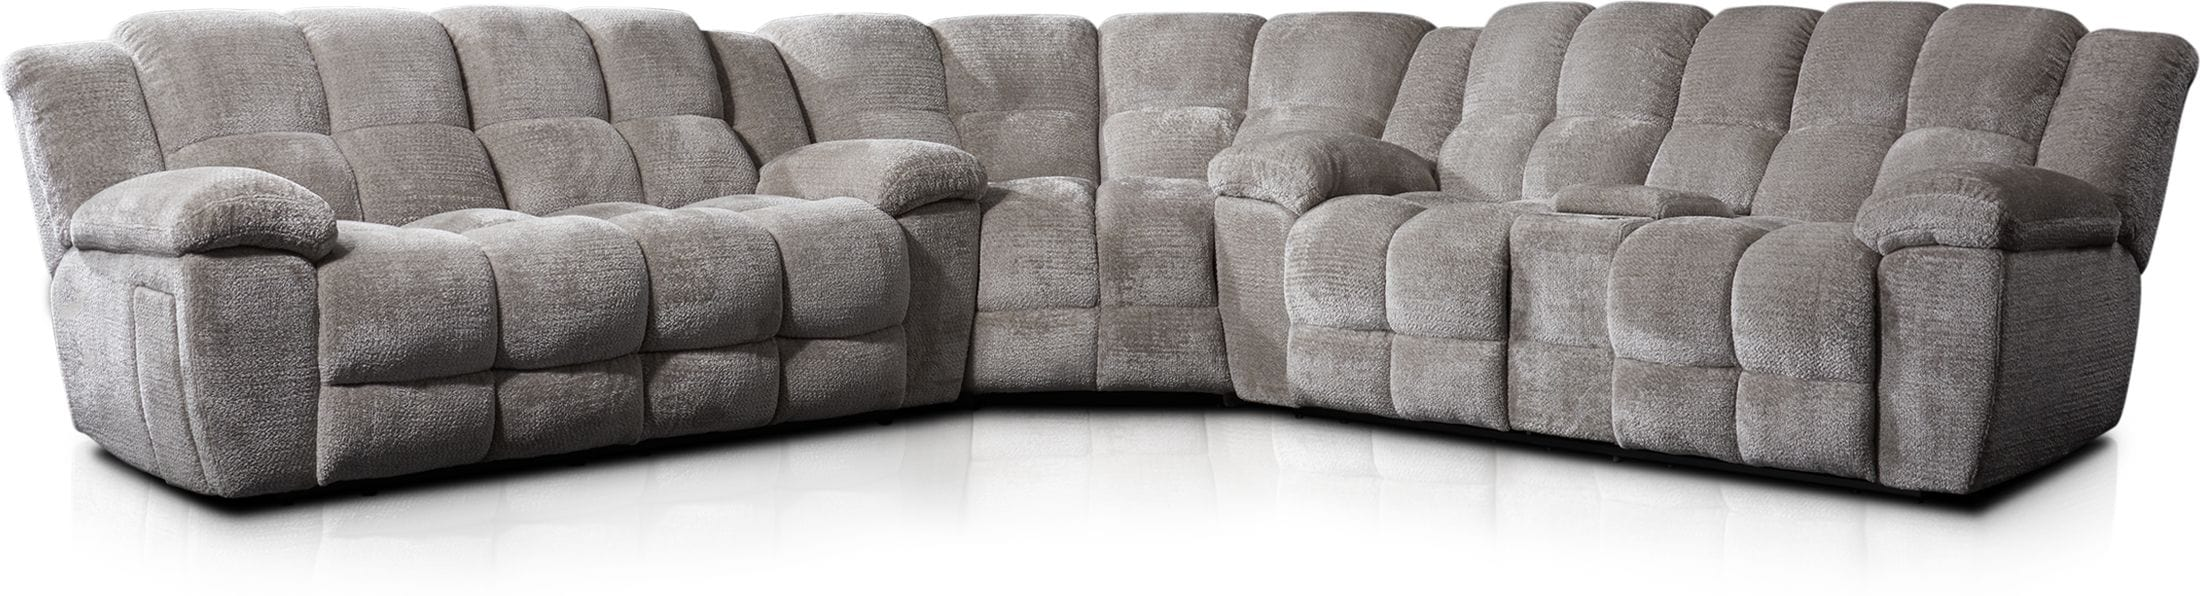 Living Room Furniture - Mellow 3-Piece Manual Reclining Sectional with 4 Reclining Seats - Stone